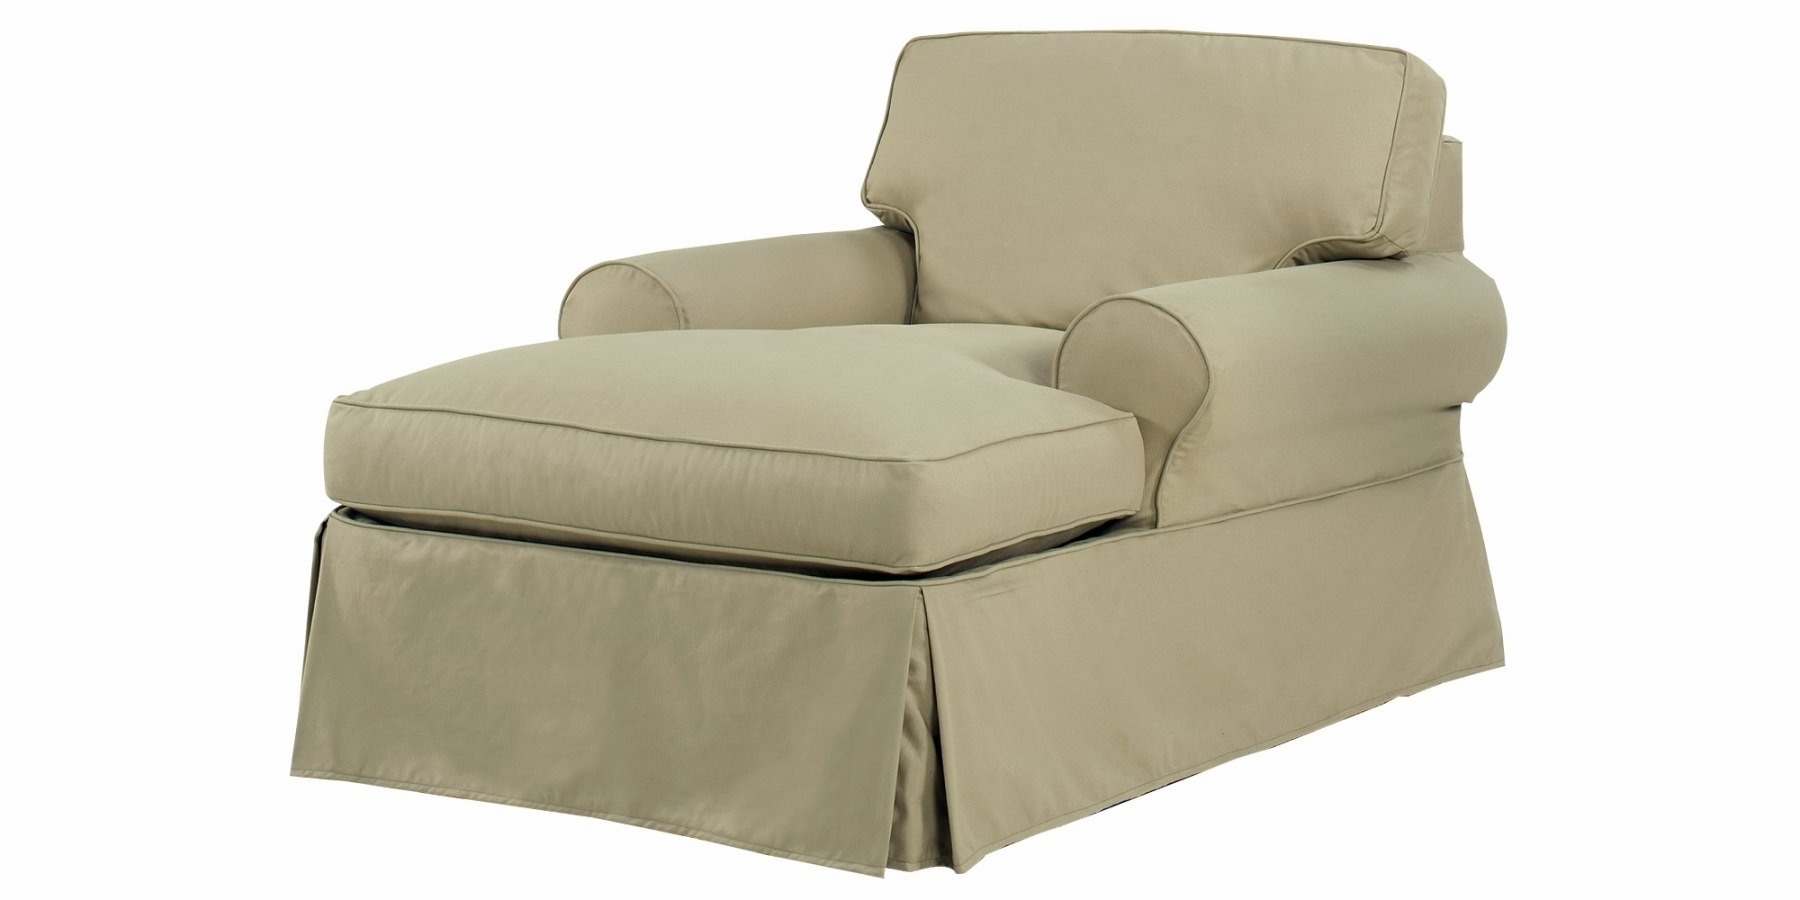 Chaise Lounge Chairs With Two Arms For Well Known Chaise Lounge Chairs Two Arms • Lounge Chairs Ideas (View 3 of 15)